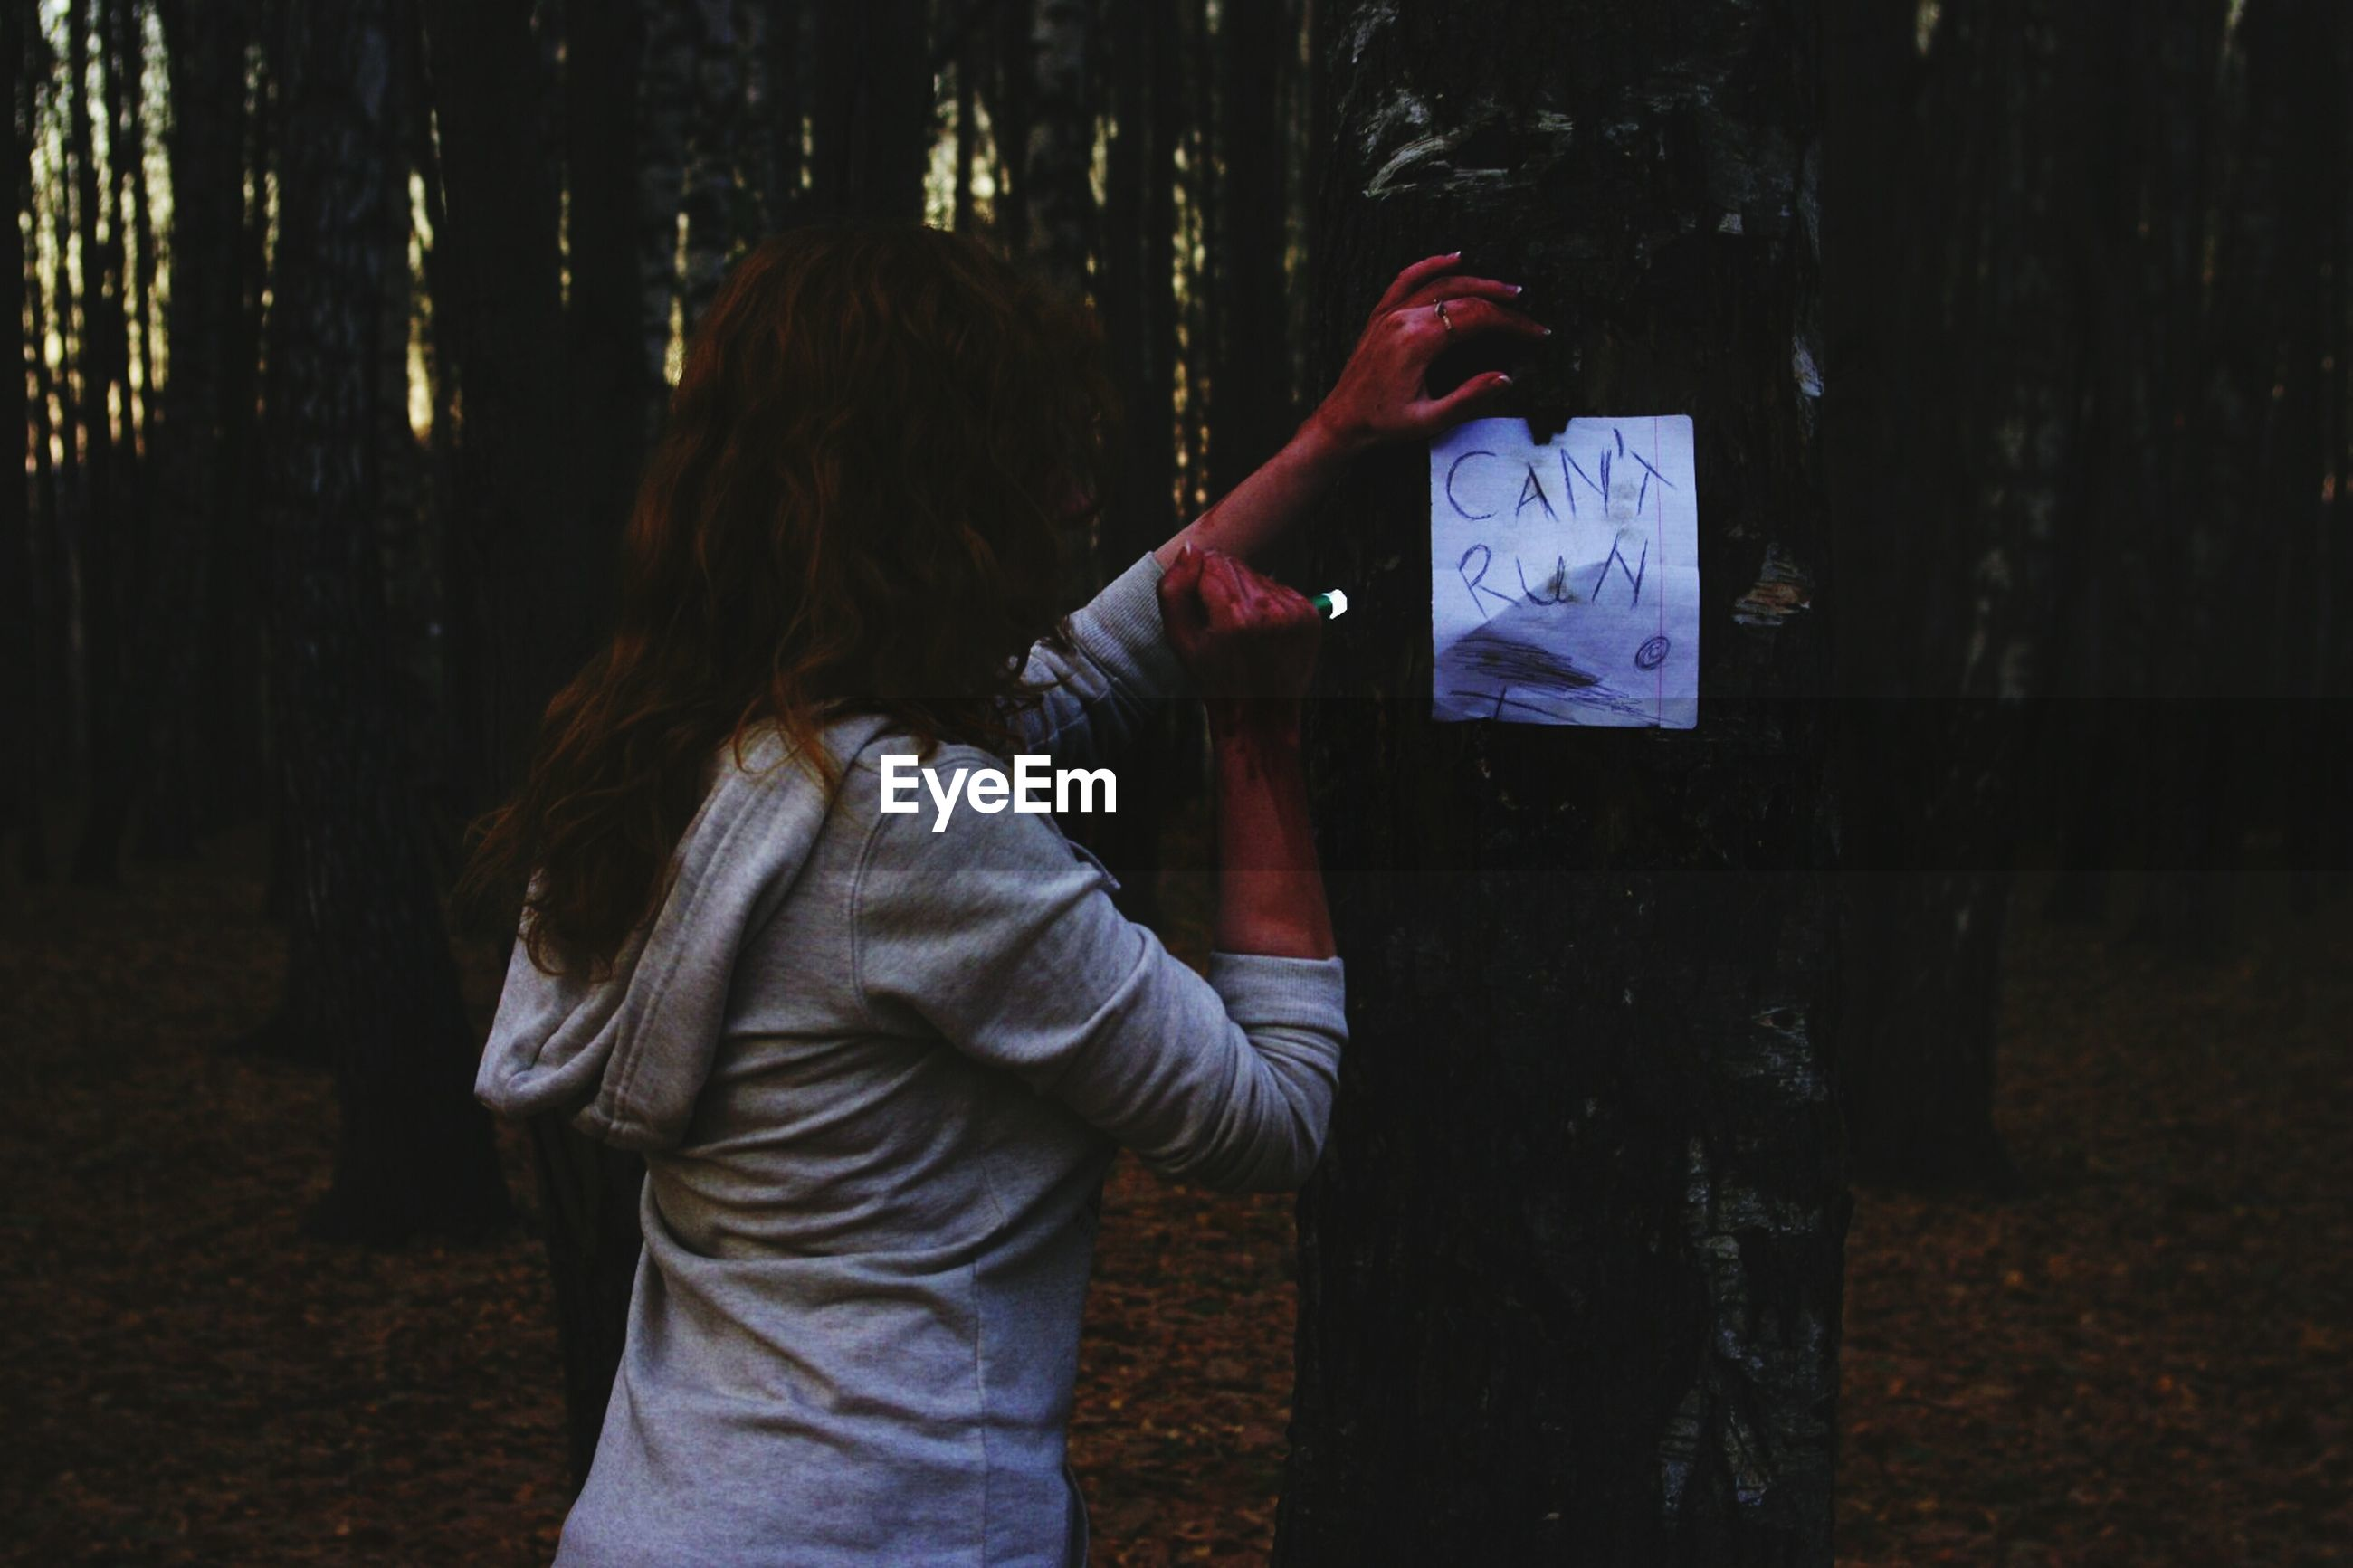 lifestyles, leisure activity, standing, rear view, holding, communication, casual clothing, men, wood - material, night, outdoors, three quarter length, tree, waist up, text, unrecognizable person, field